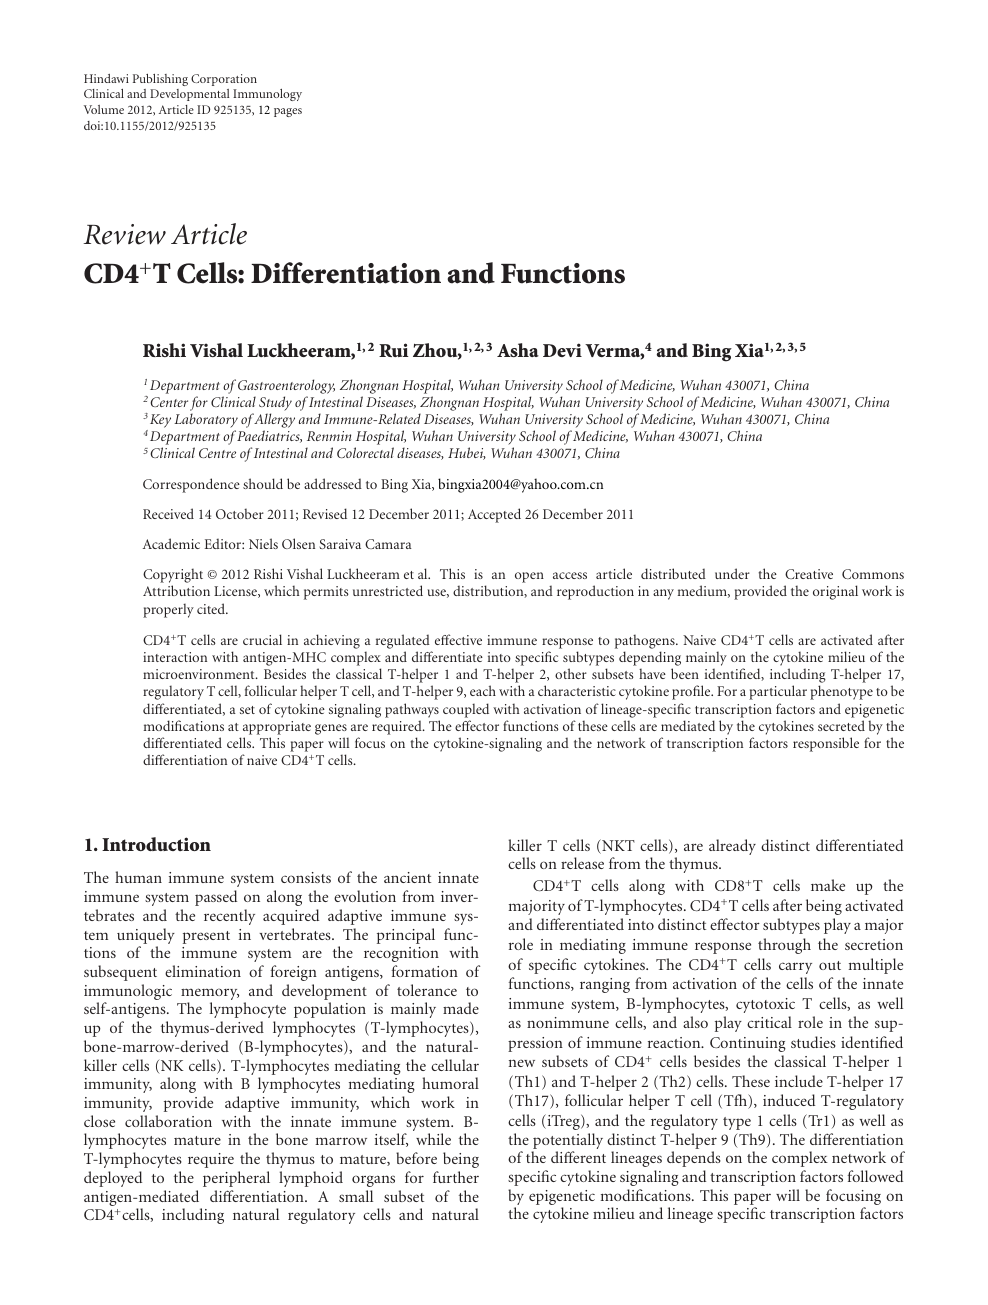 CD4+T Cells: Differentiation and Functions – topic of